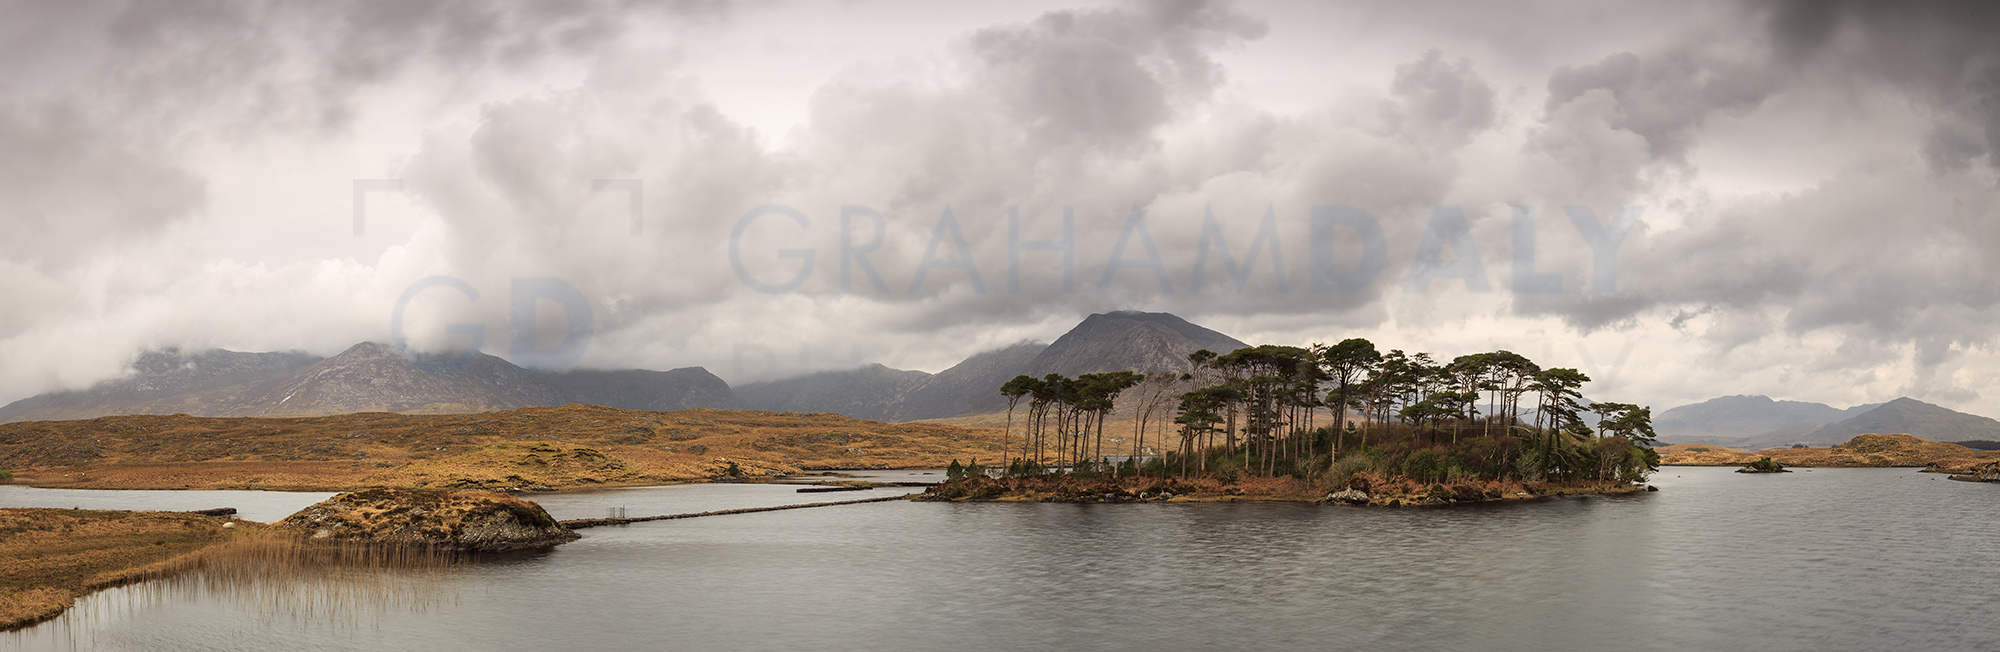 The Pine Island at Derryclare Lough